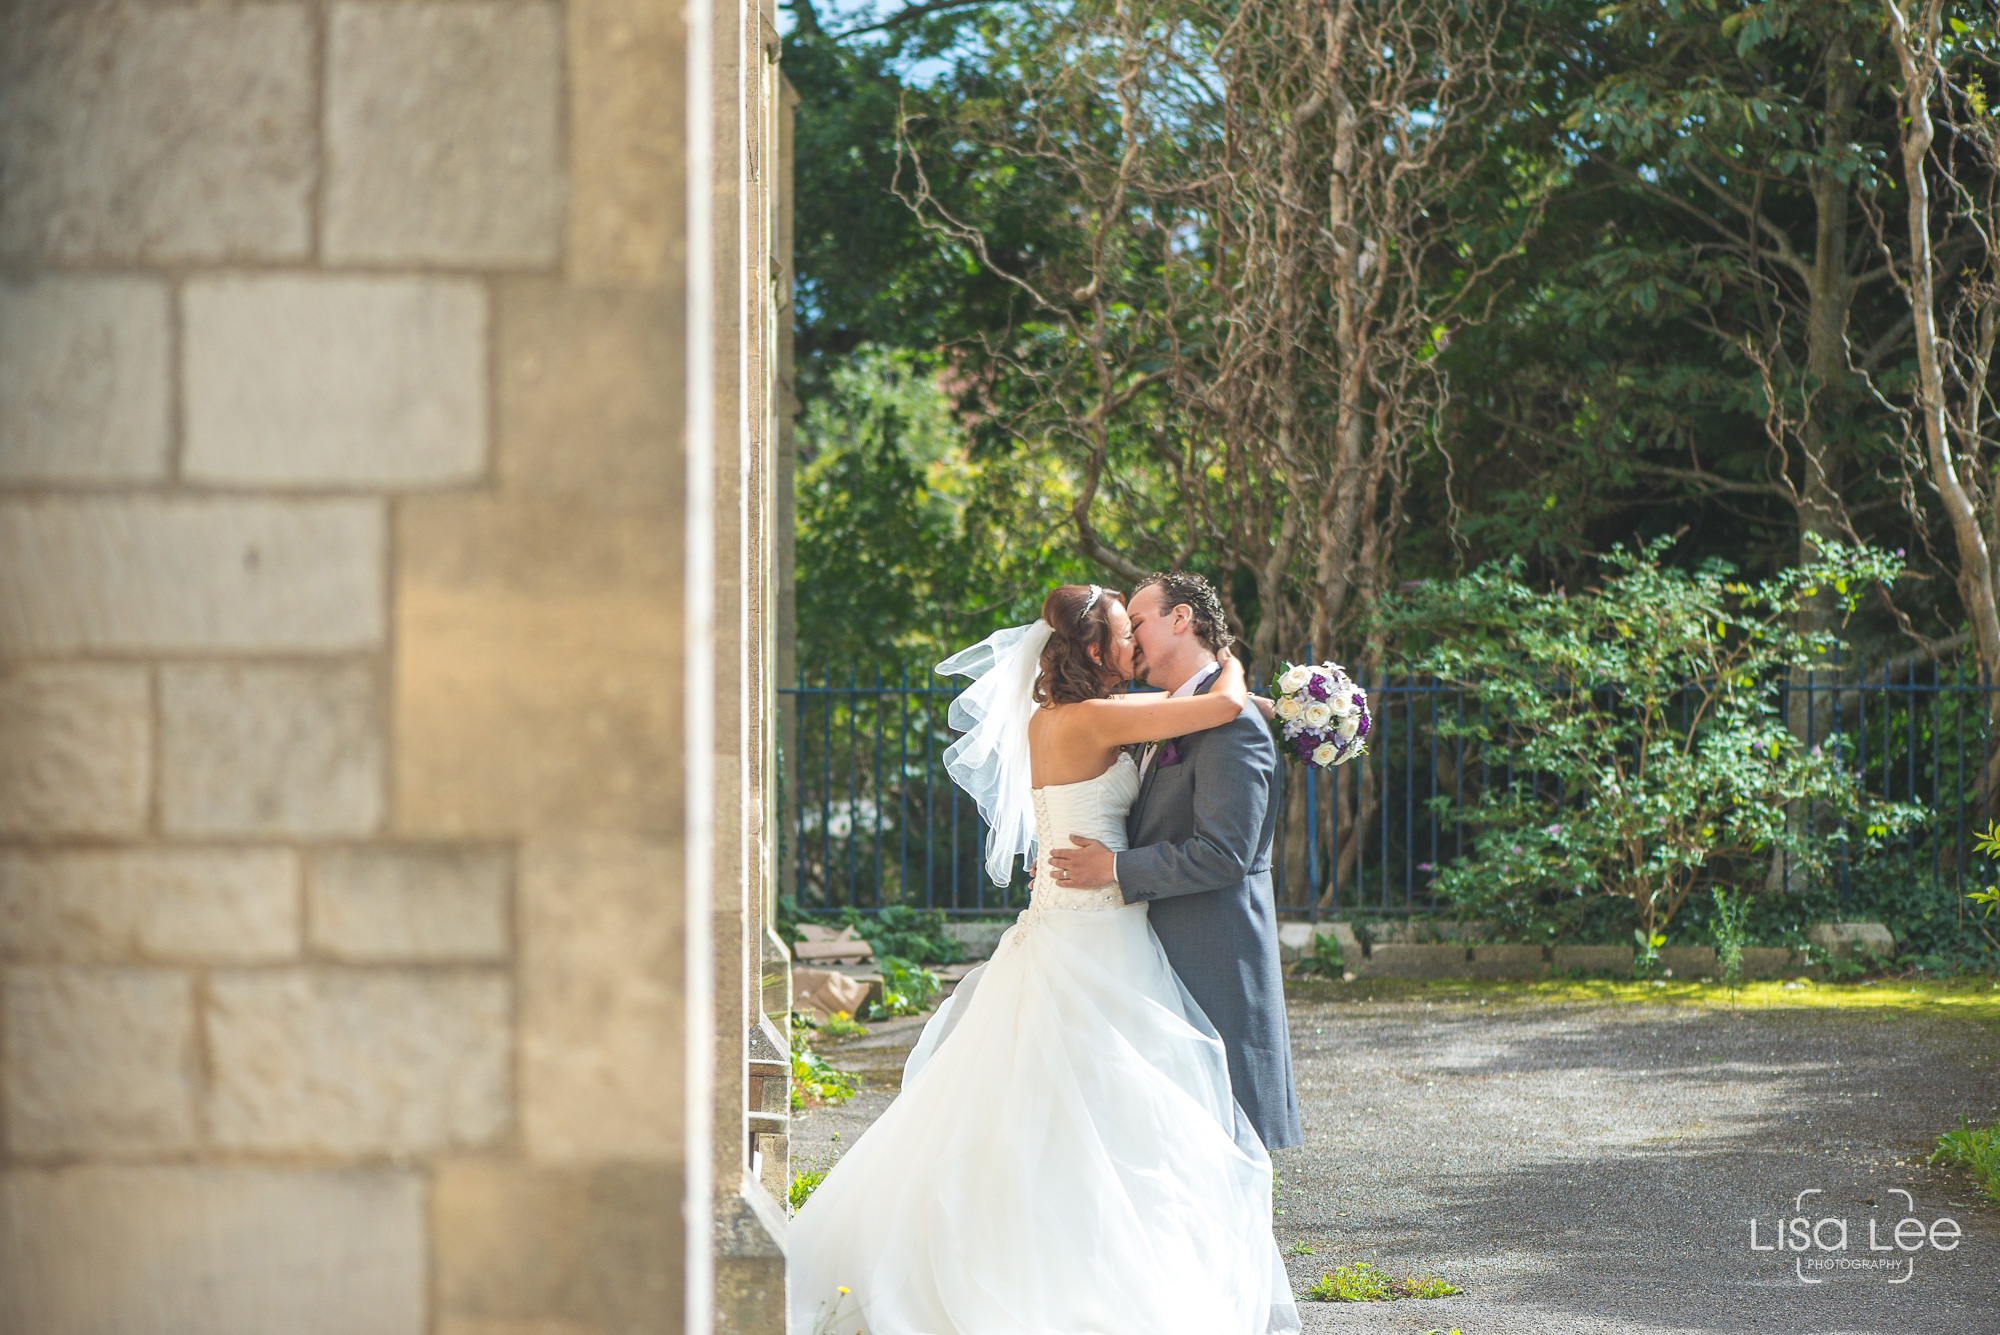 All-Saints-Church-Lisa-Lee-Documentary-Wedding-Photography-5.jpg